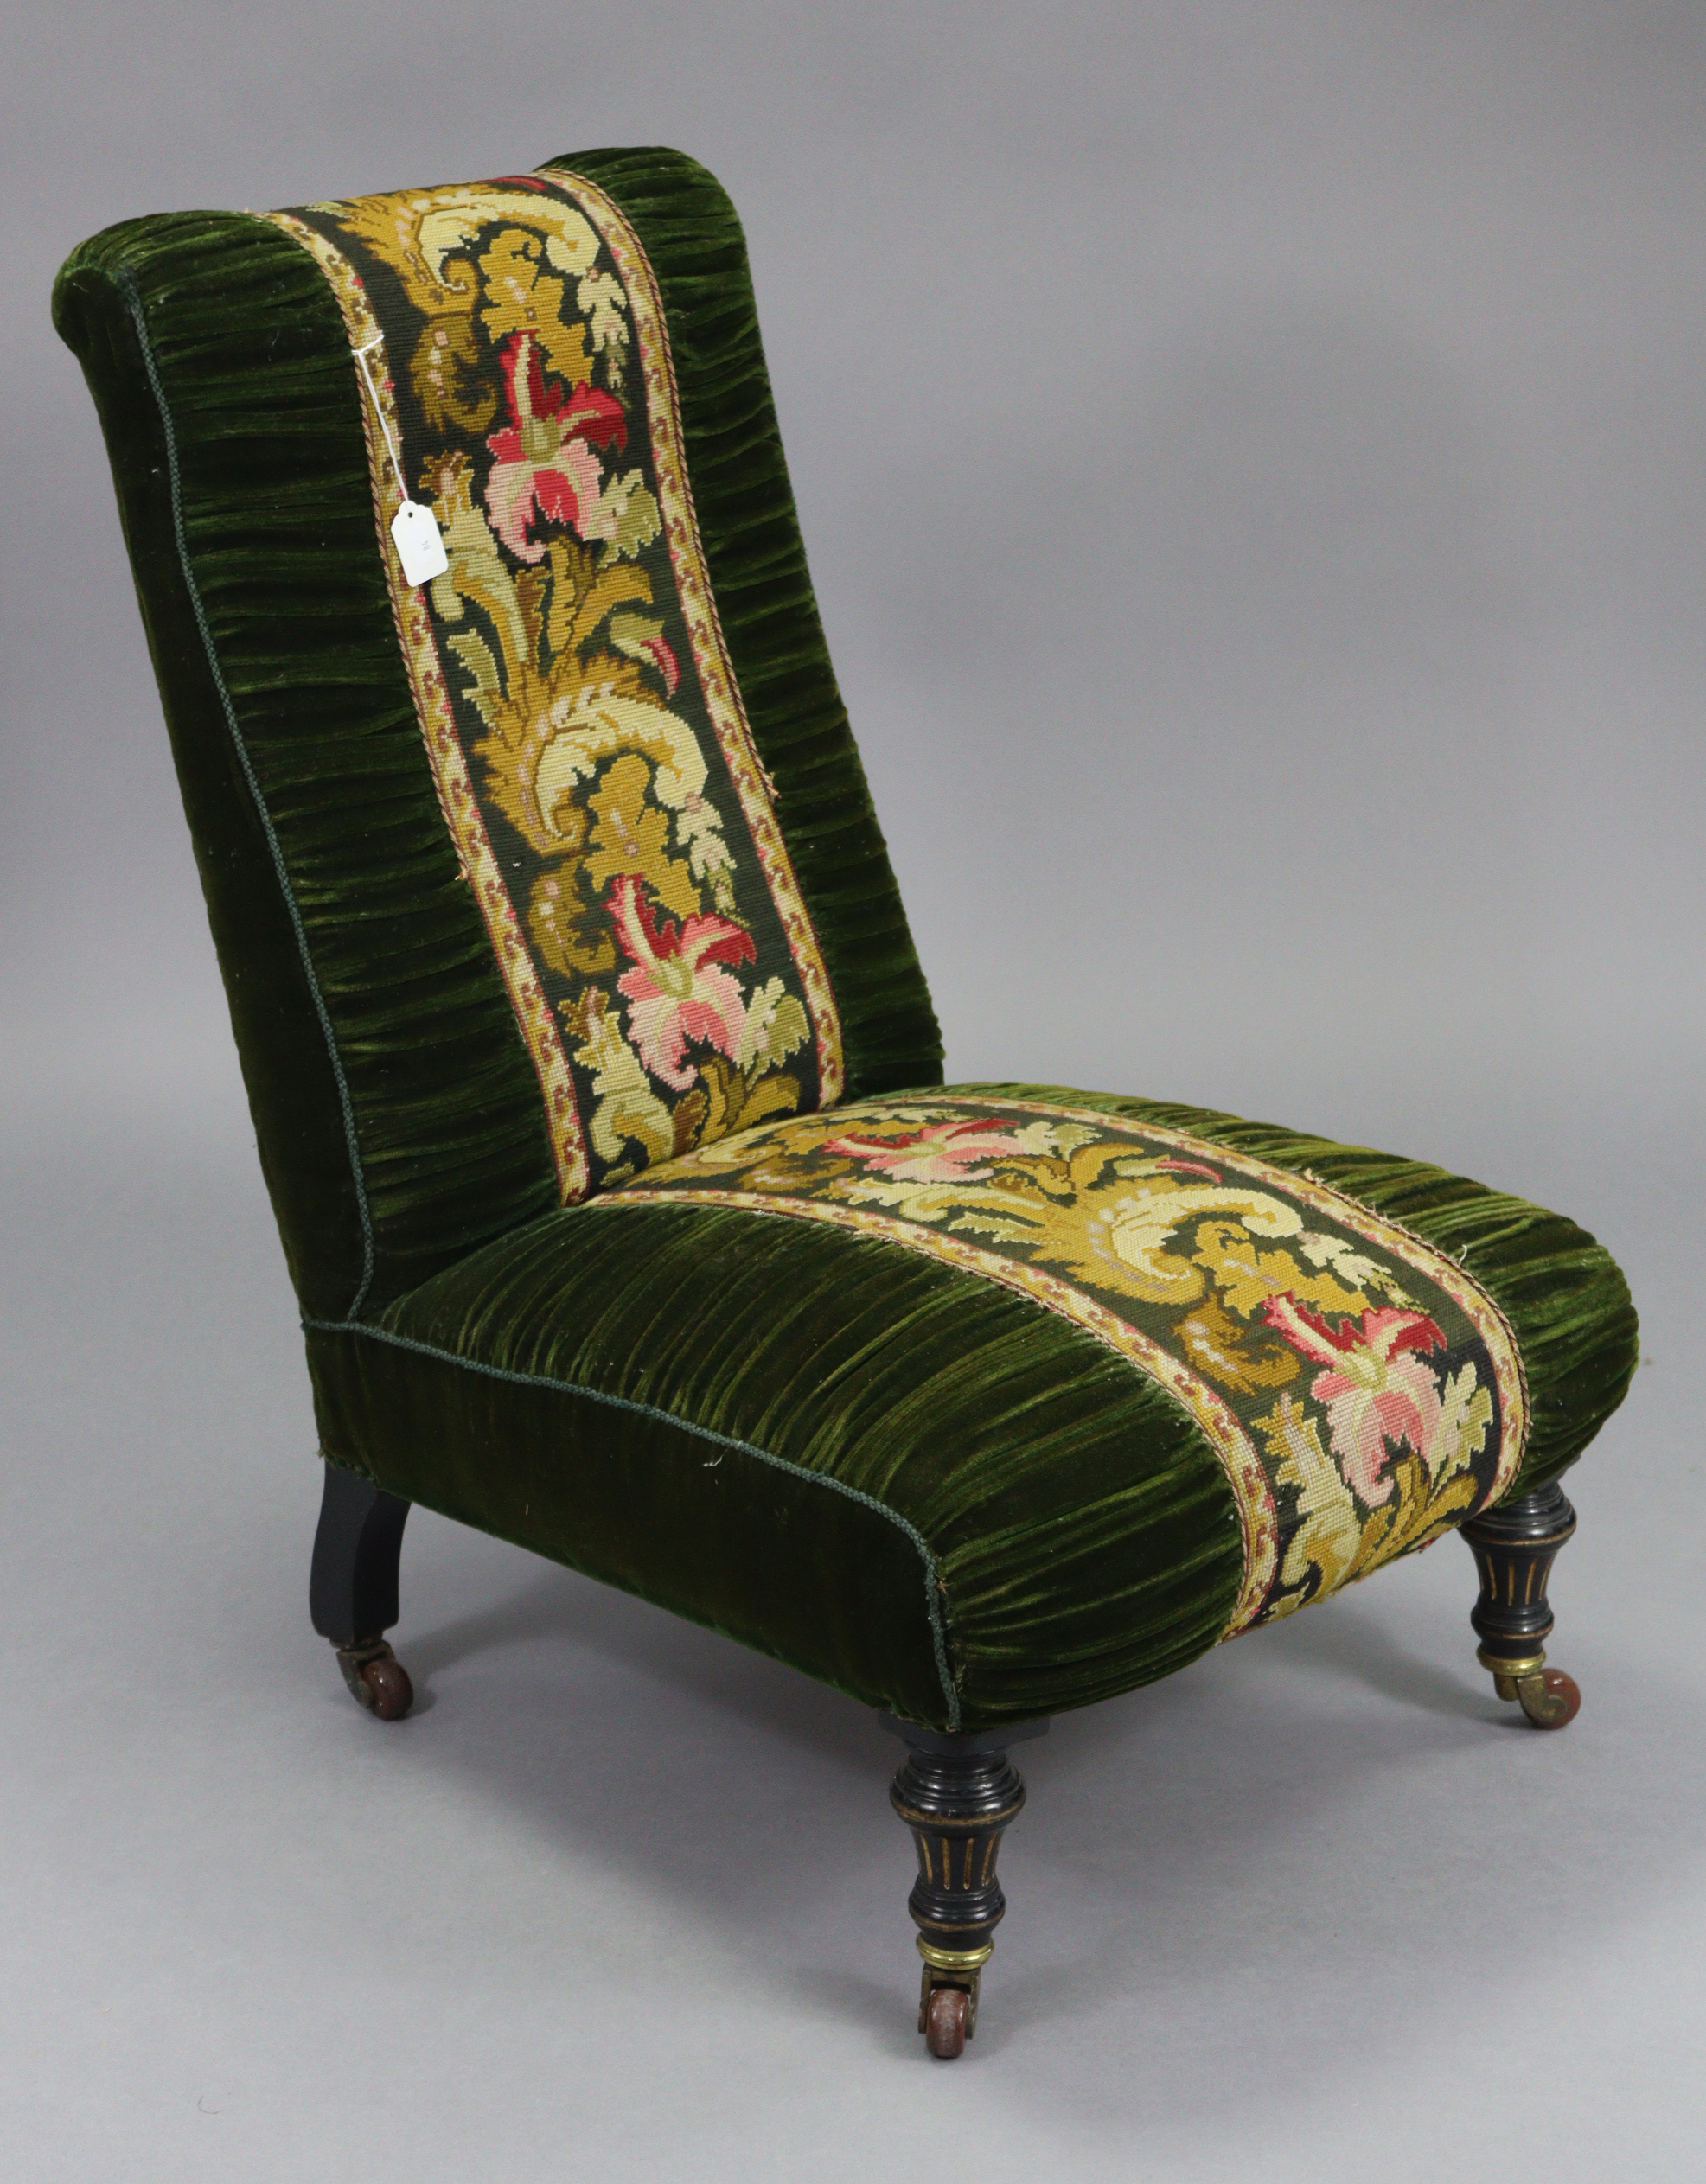 A late 19th century nursing chair upholstered green velour & multi-coloured foliate embroidery, on